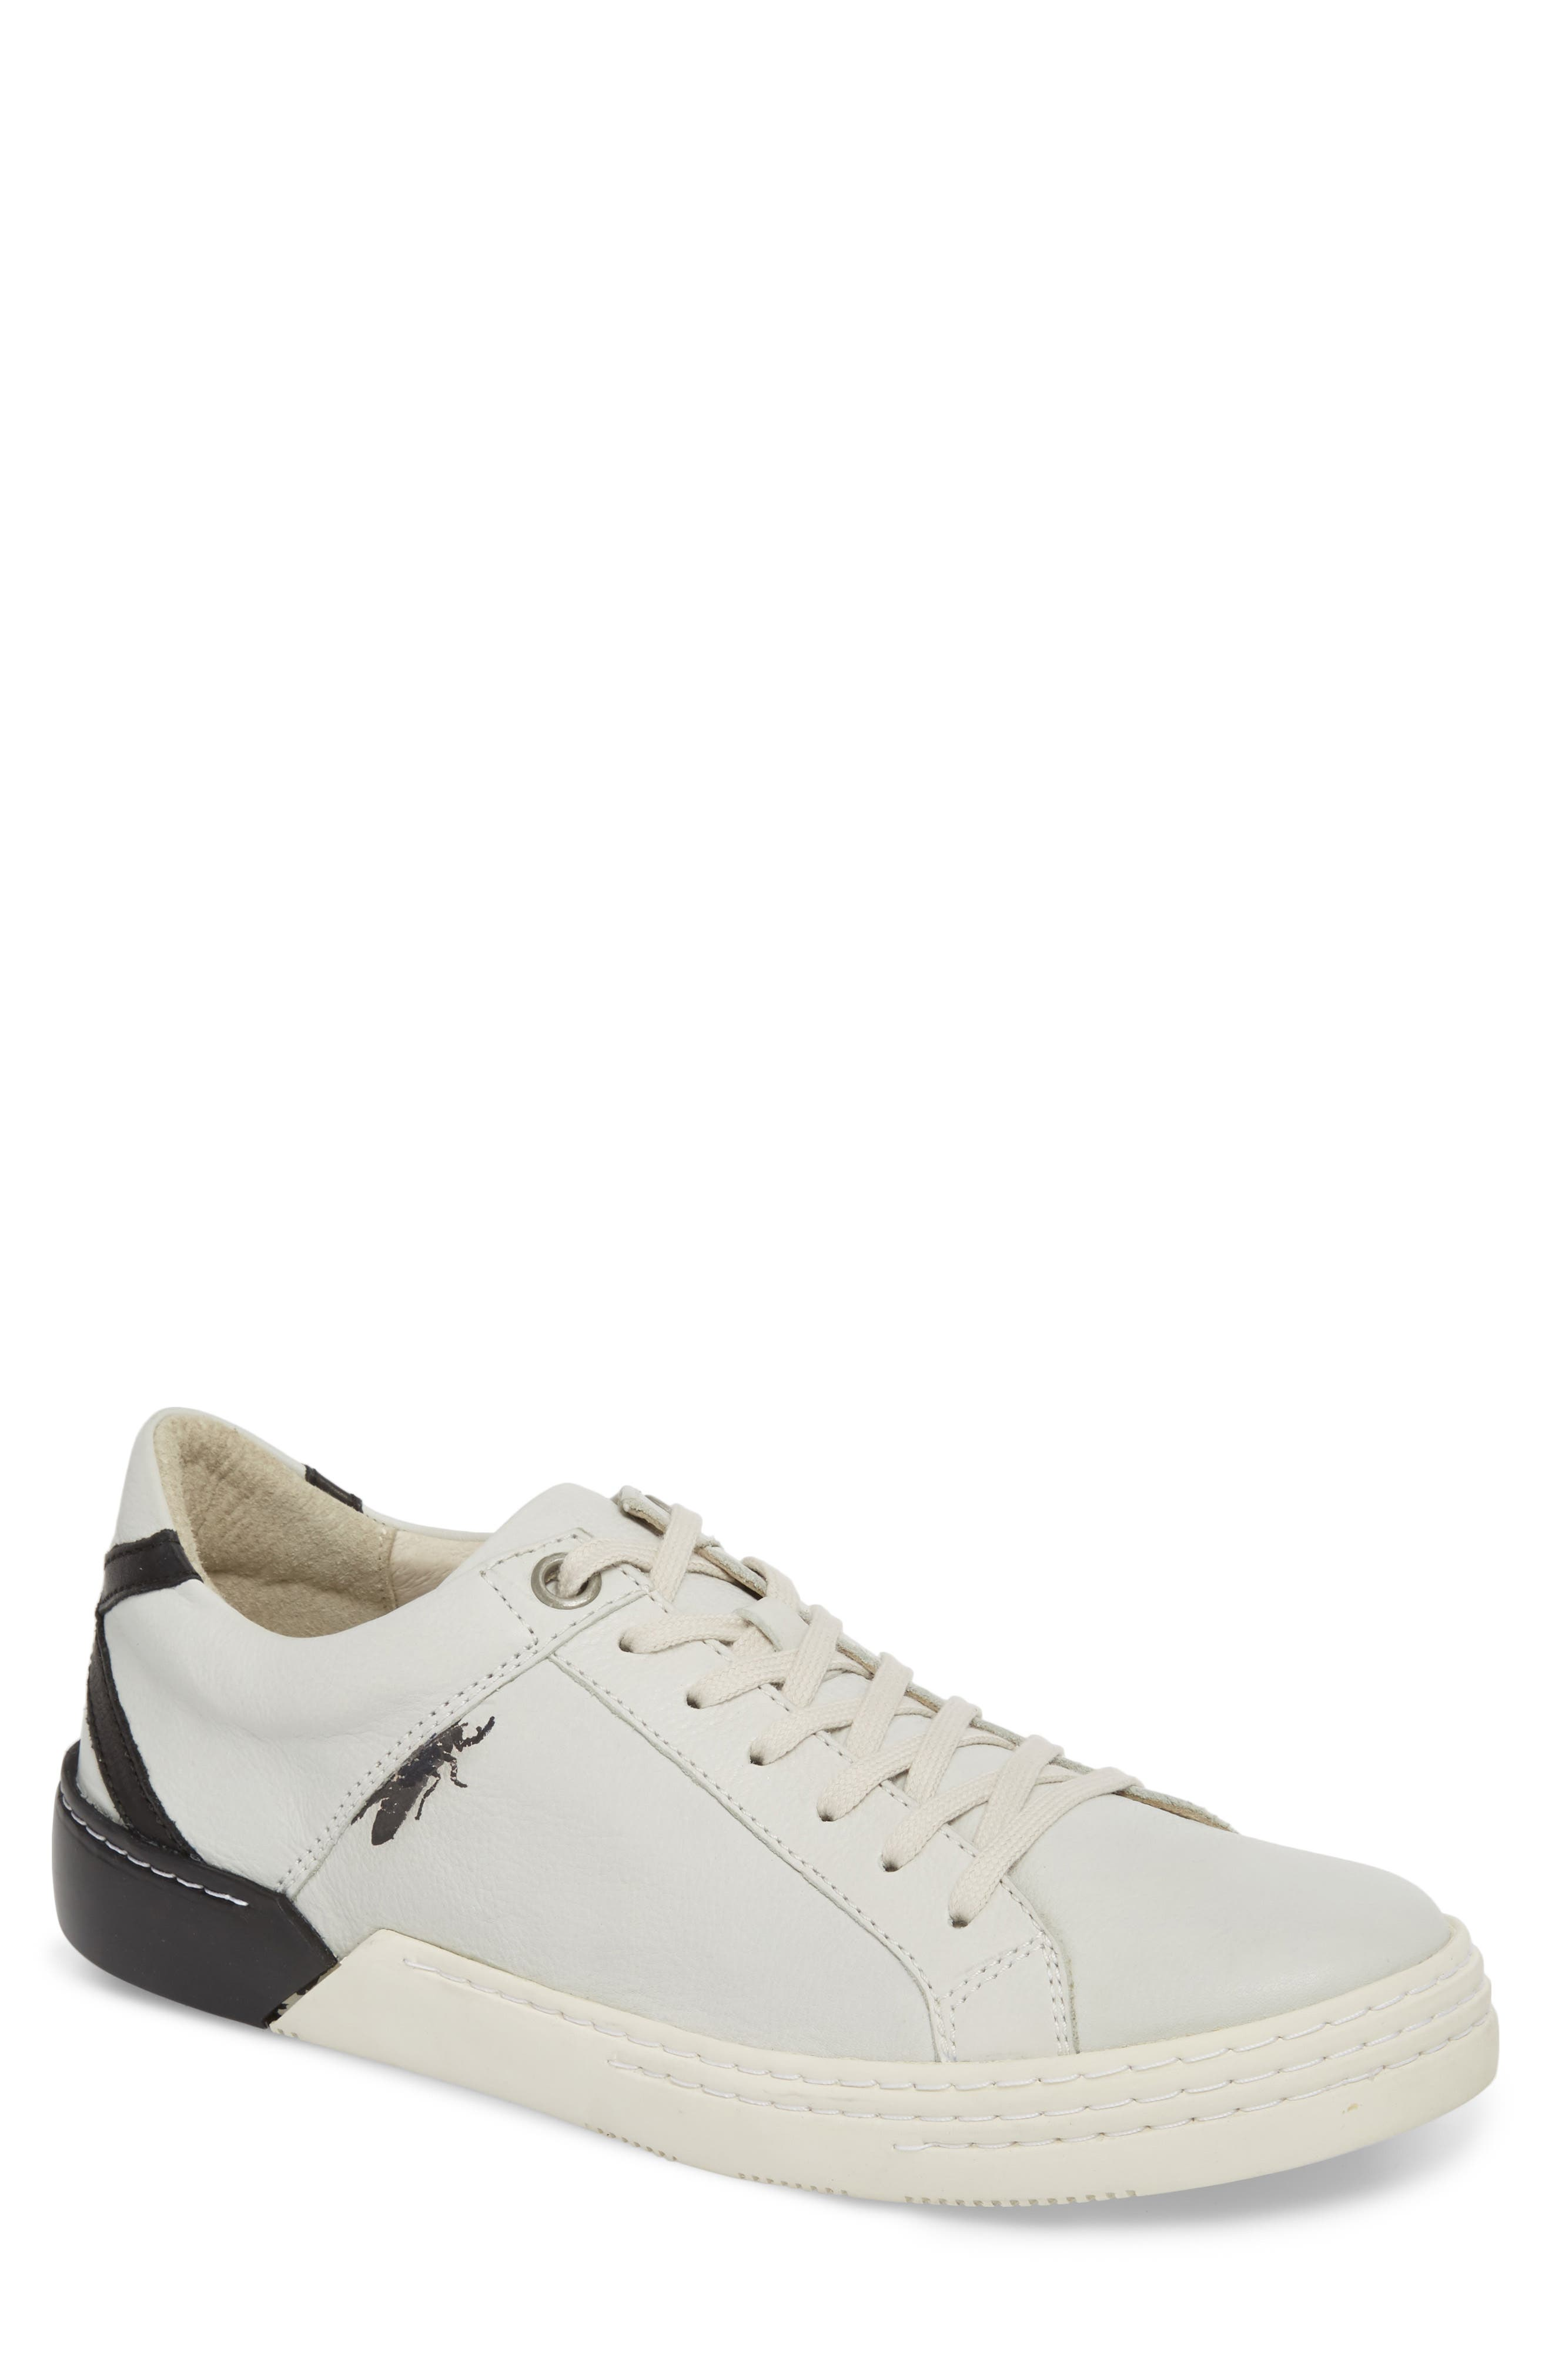 Sene Low Top Sneaker,                             Main thumbnail 1, color,                             Off White Leather